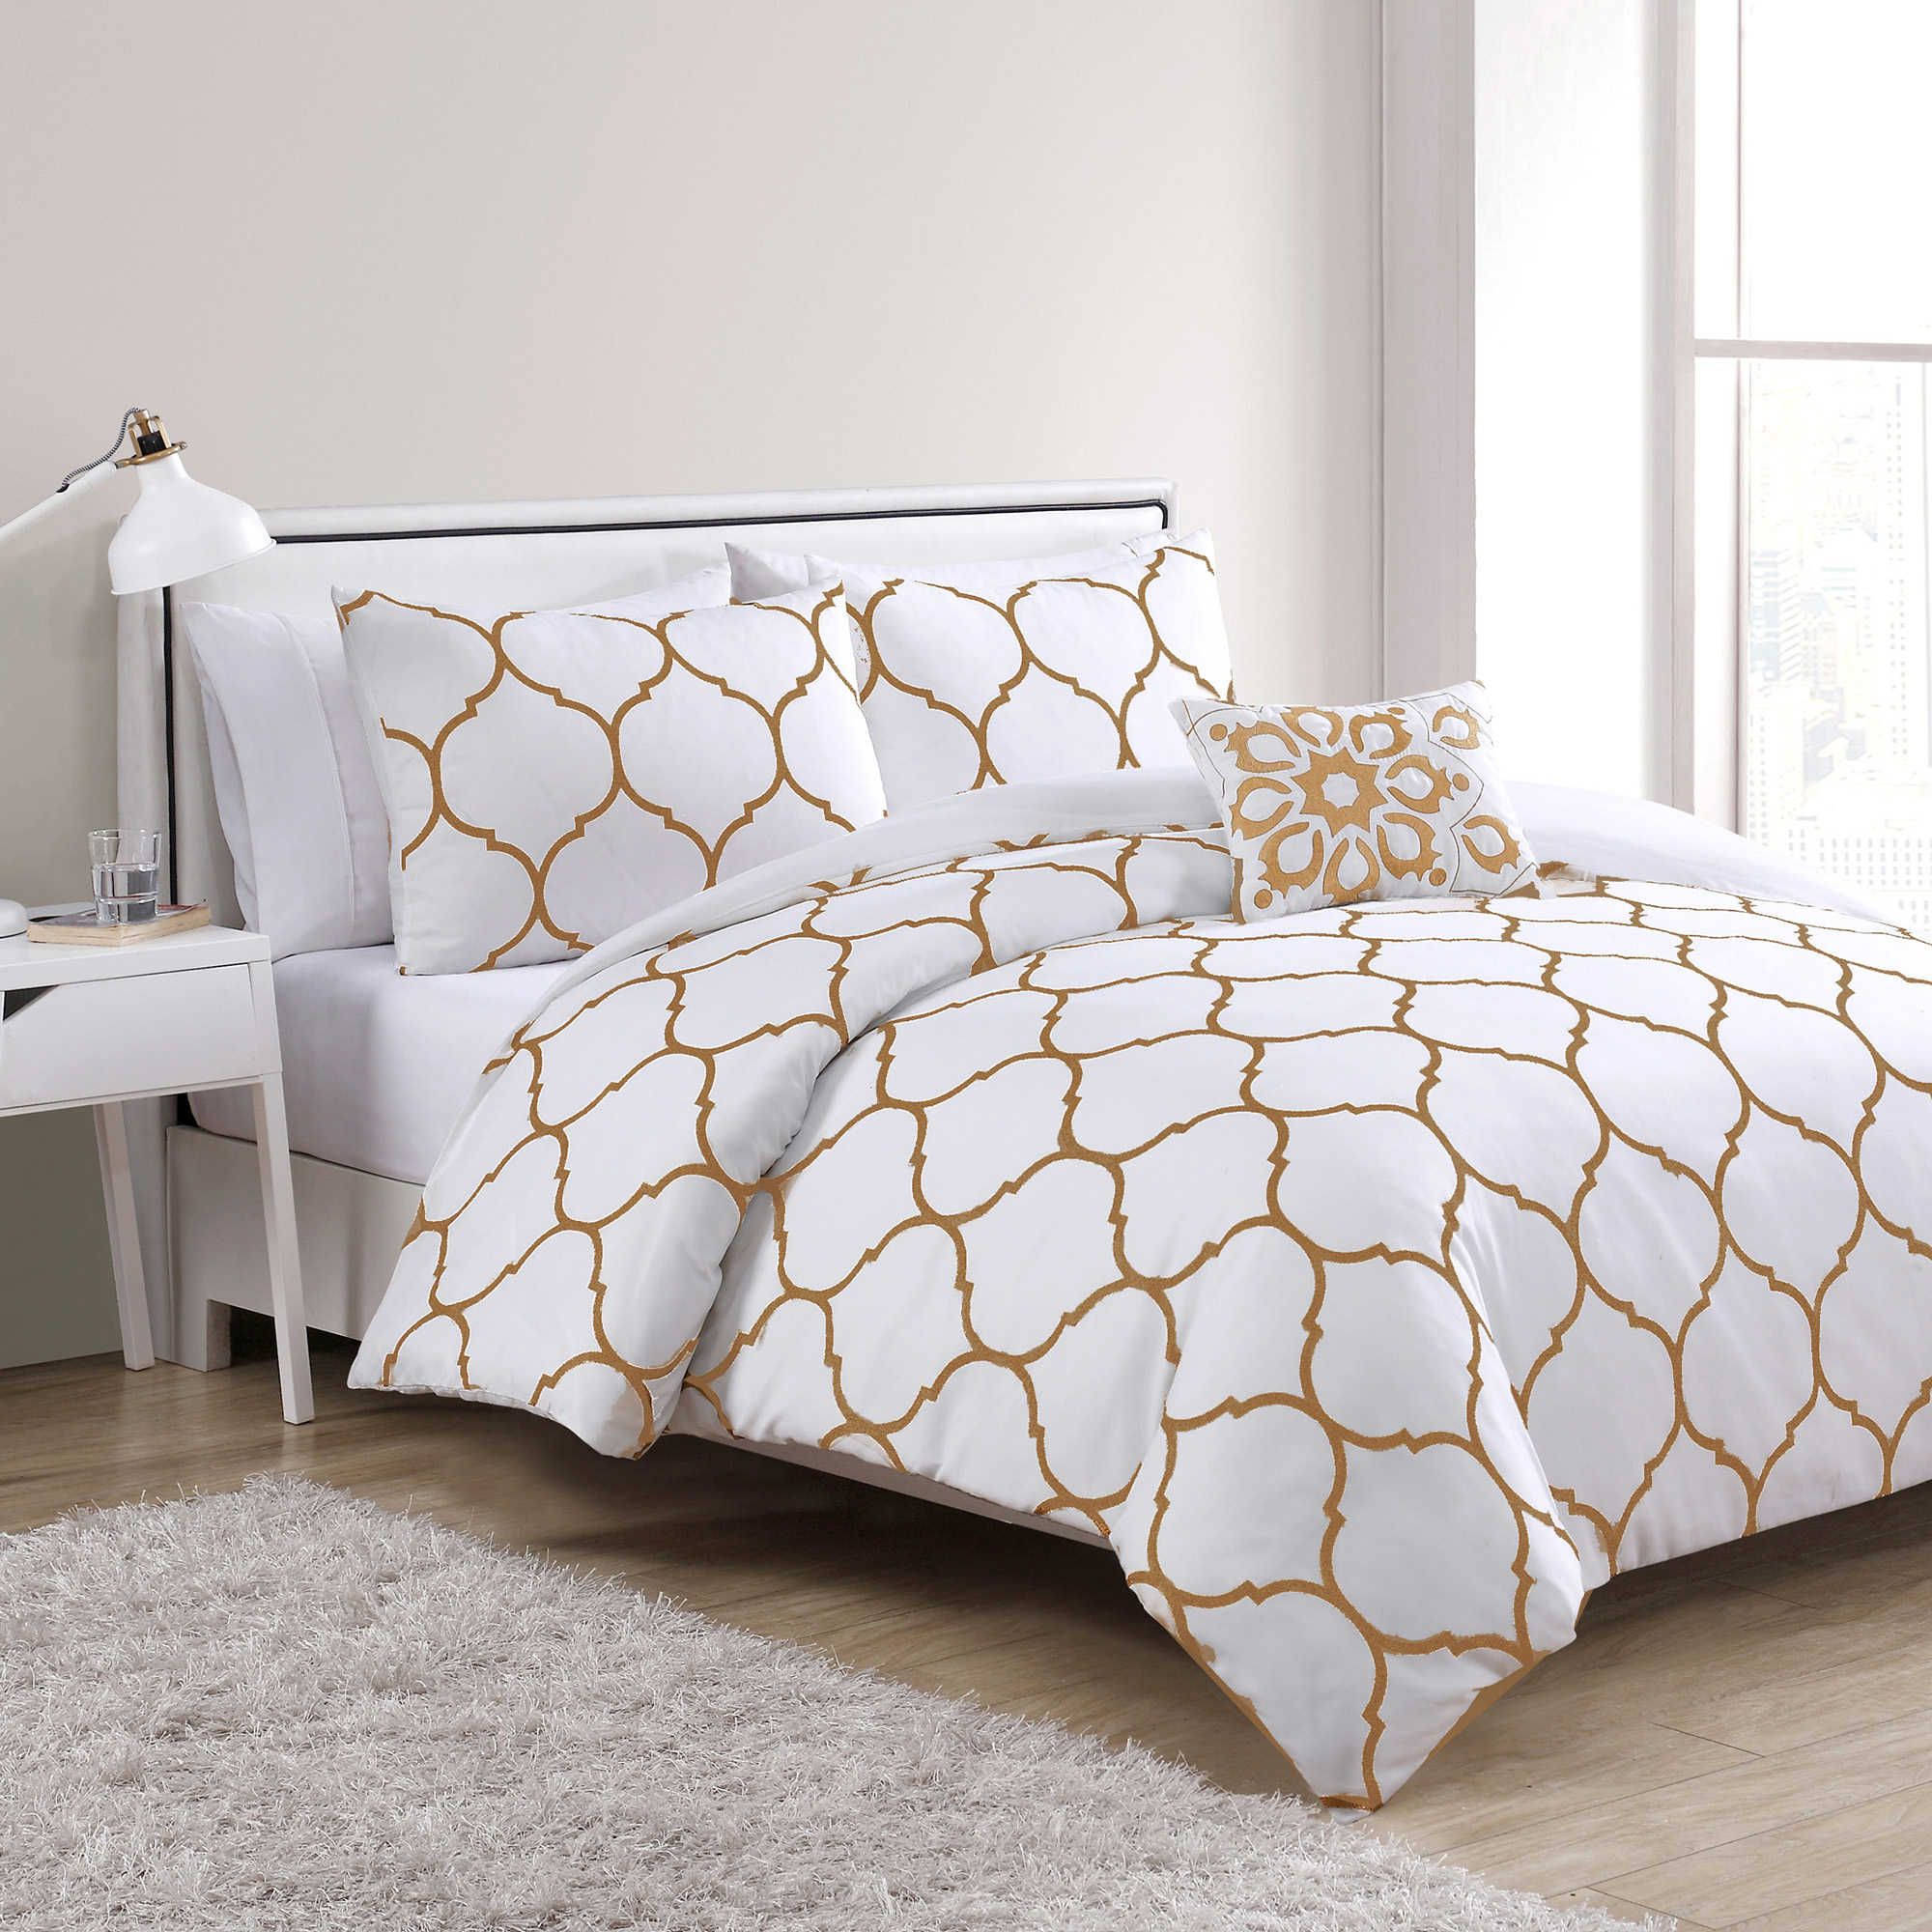 Invalid Url Gold Bedroom White And Gold Bedding Blue And Gold Bedroom